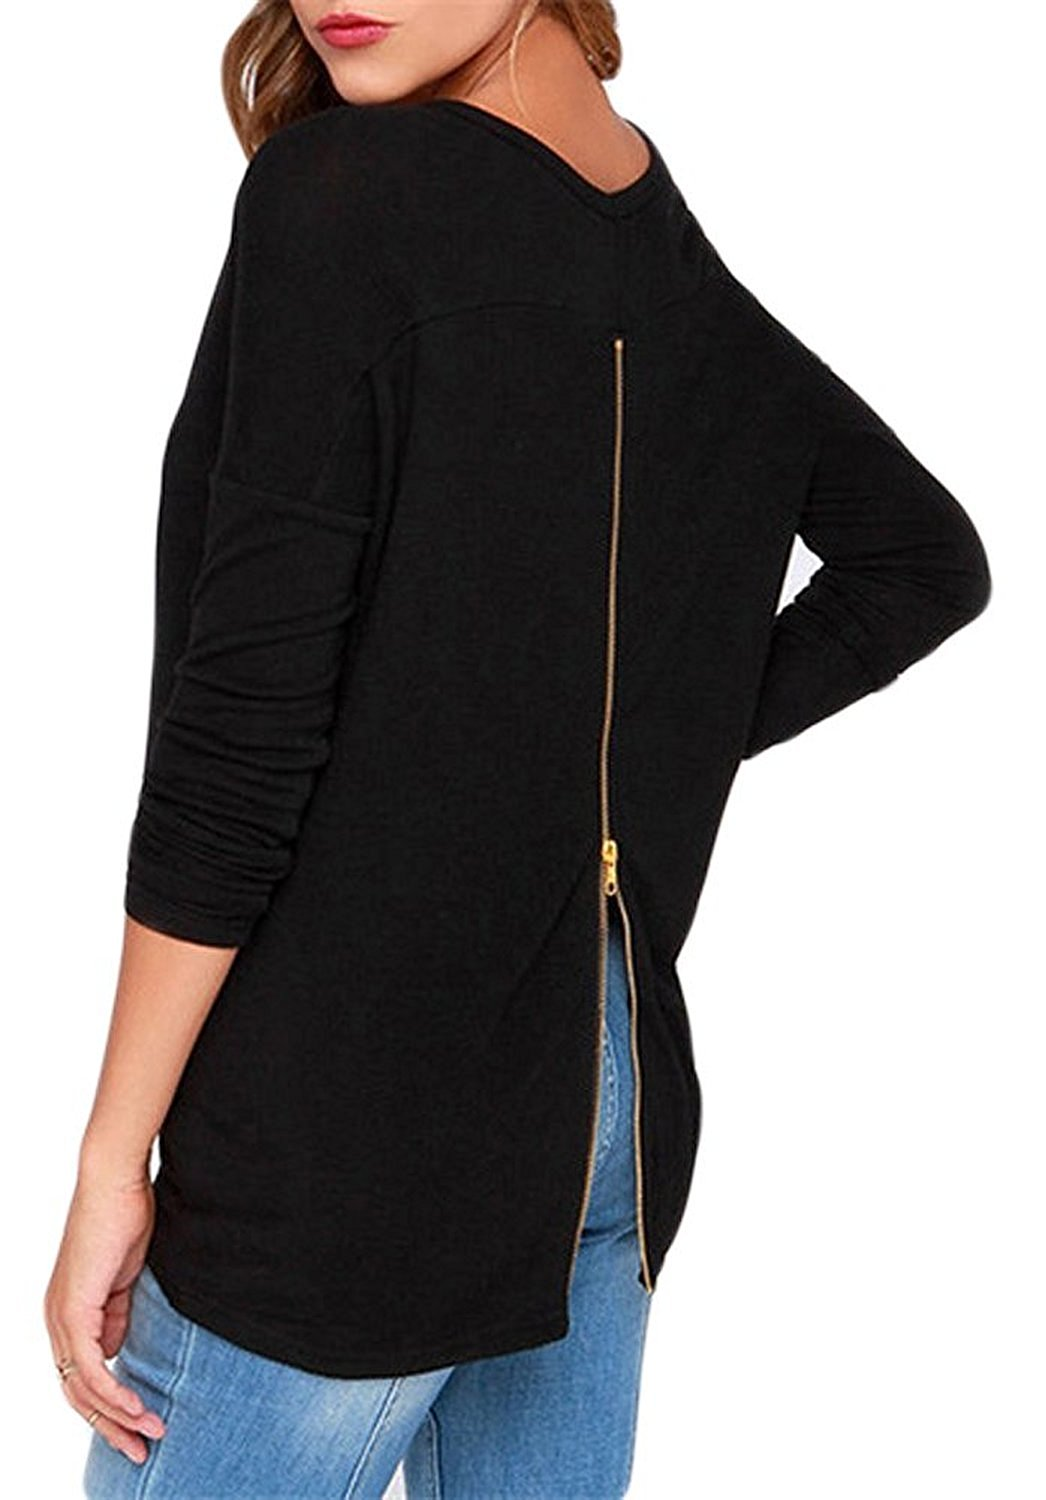 black tops for women halife womenu0027s round neck long sleeve back zipper t-shirt tops at amazon  womenu0027s clothing VJUADLB